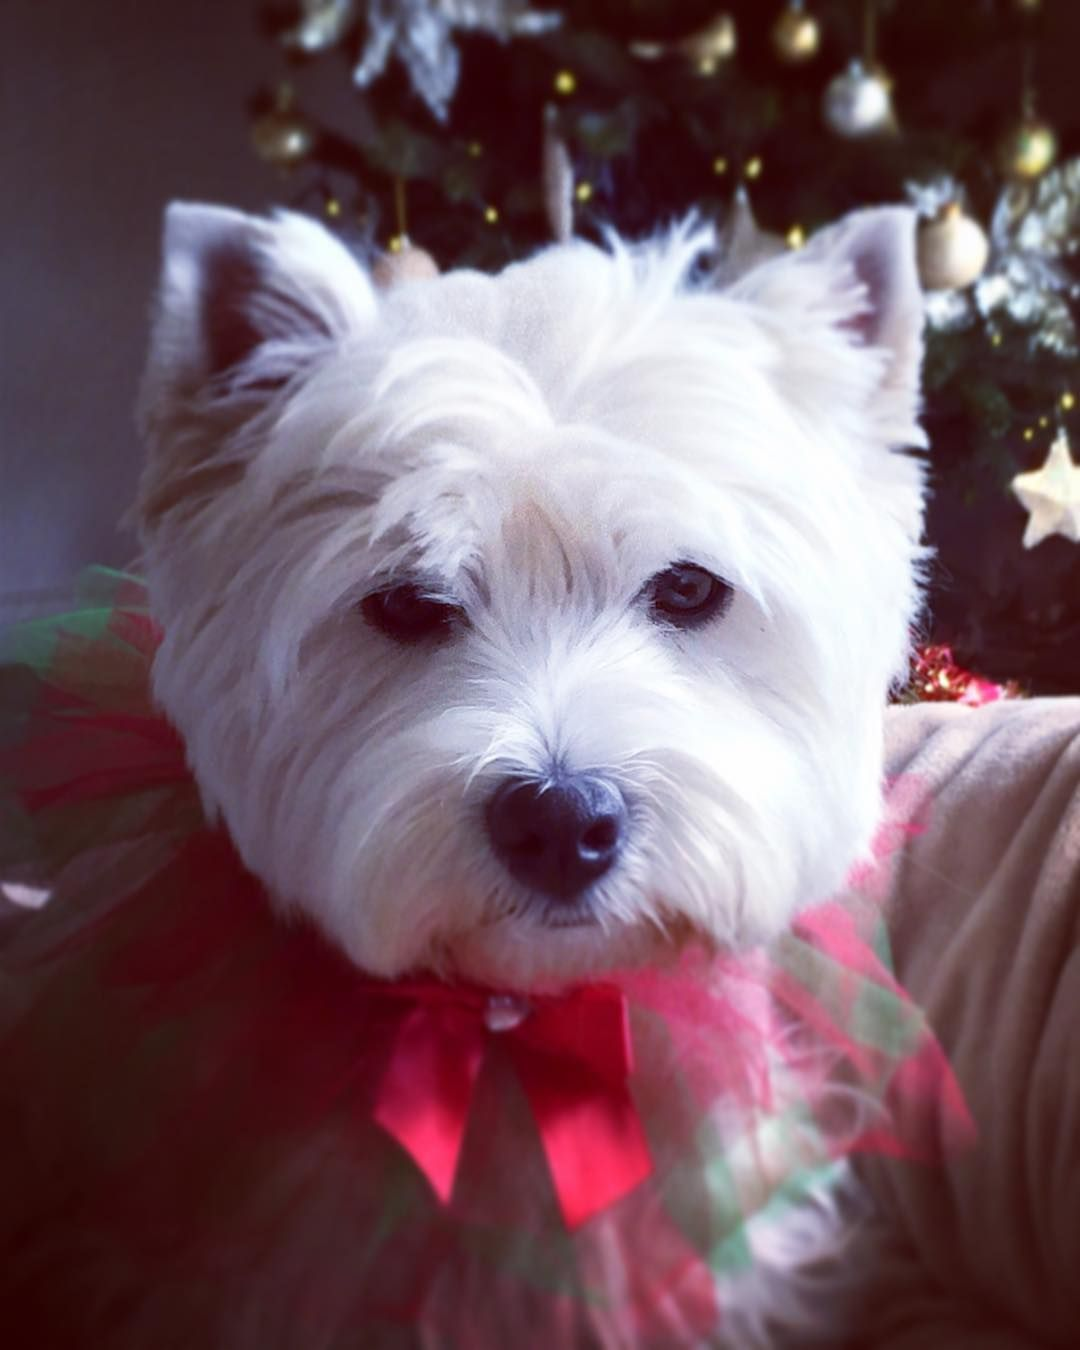 """Hi fwends! Happy Sunday I twying too luk 'nice' but mom sed it no matter coz """"Santa always kno who been norty"""" not me fwends I been gud all year ! . Hope yoo haffin a gwate day be kind to one anovver! . . #westhighlandwhiteterrier #westie #westiegram #westigram #dogsofig #whwt #westieapproved #westielove #westietude #westiesofinstagram #westiemoments #cutedog #cutewestie #dogsofinstagram #barkbox #pupshow #terrier #dogsofmelbourne #melbournedogs #lacyandpaws #dostagram #puppytales…"""